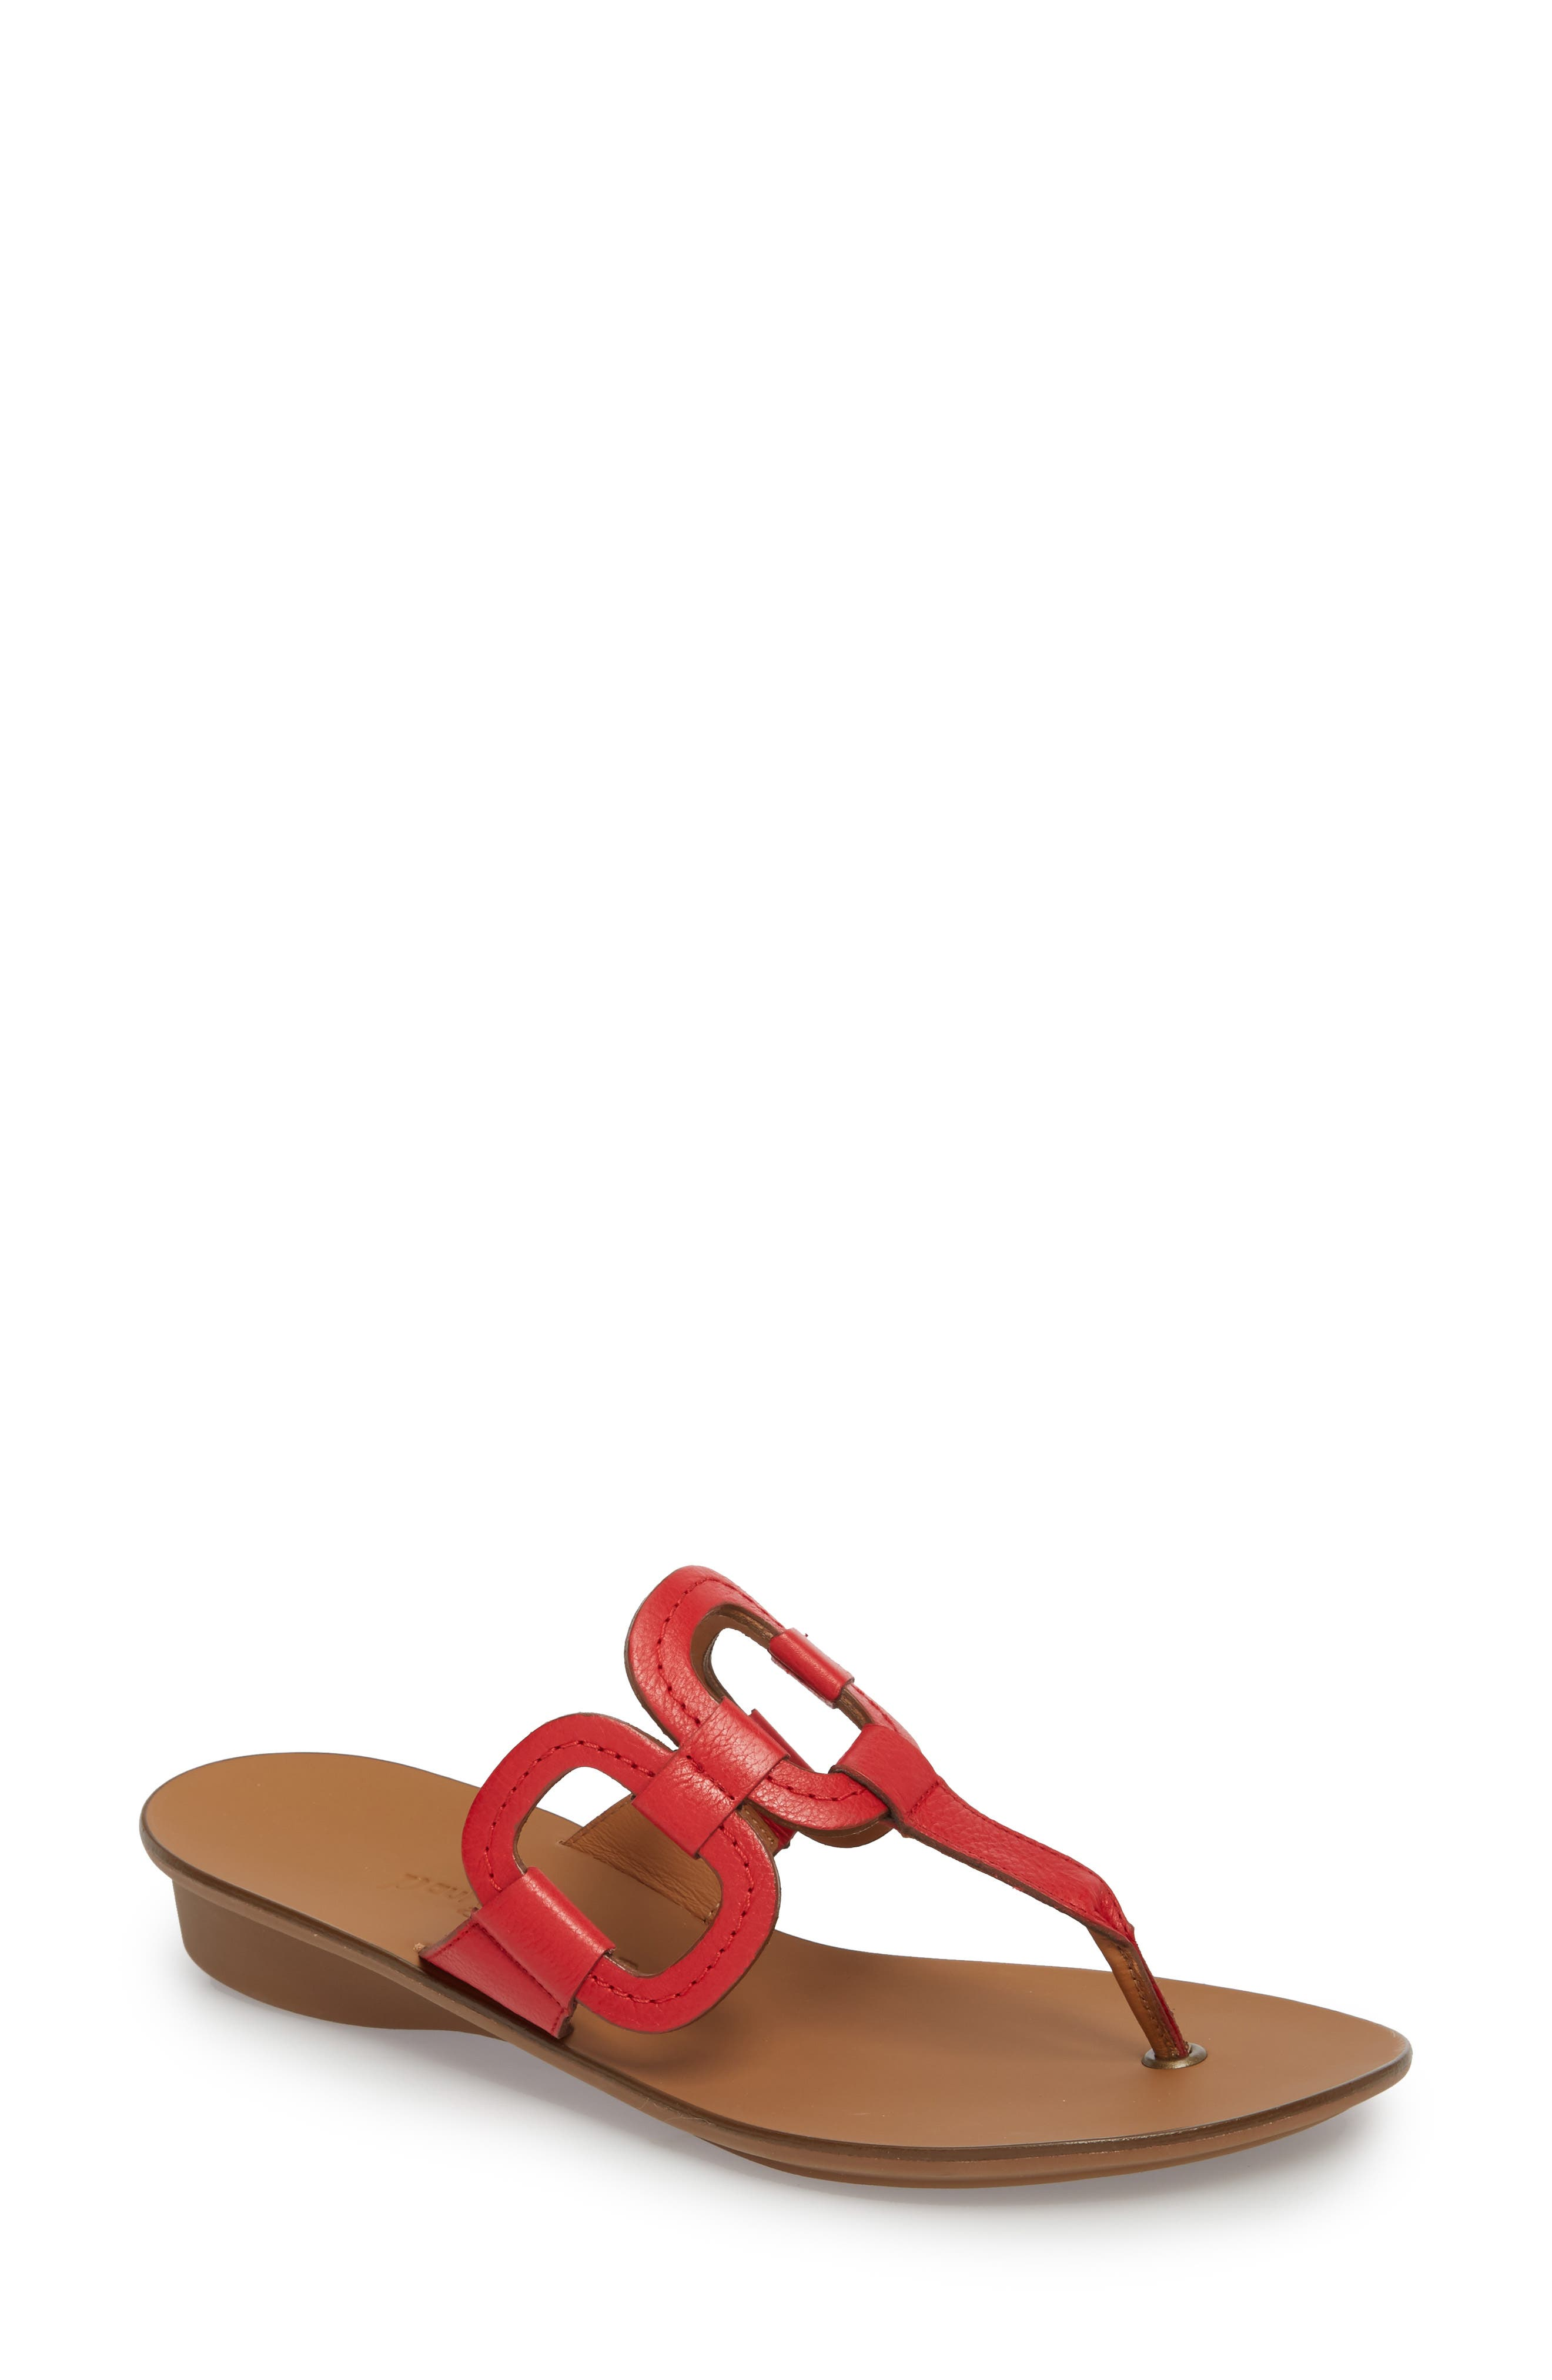 Lanai Flip-Flop,                         Main,                         color, Red Leather